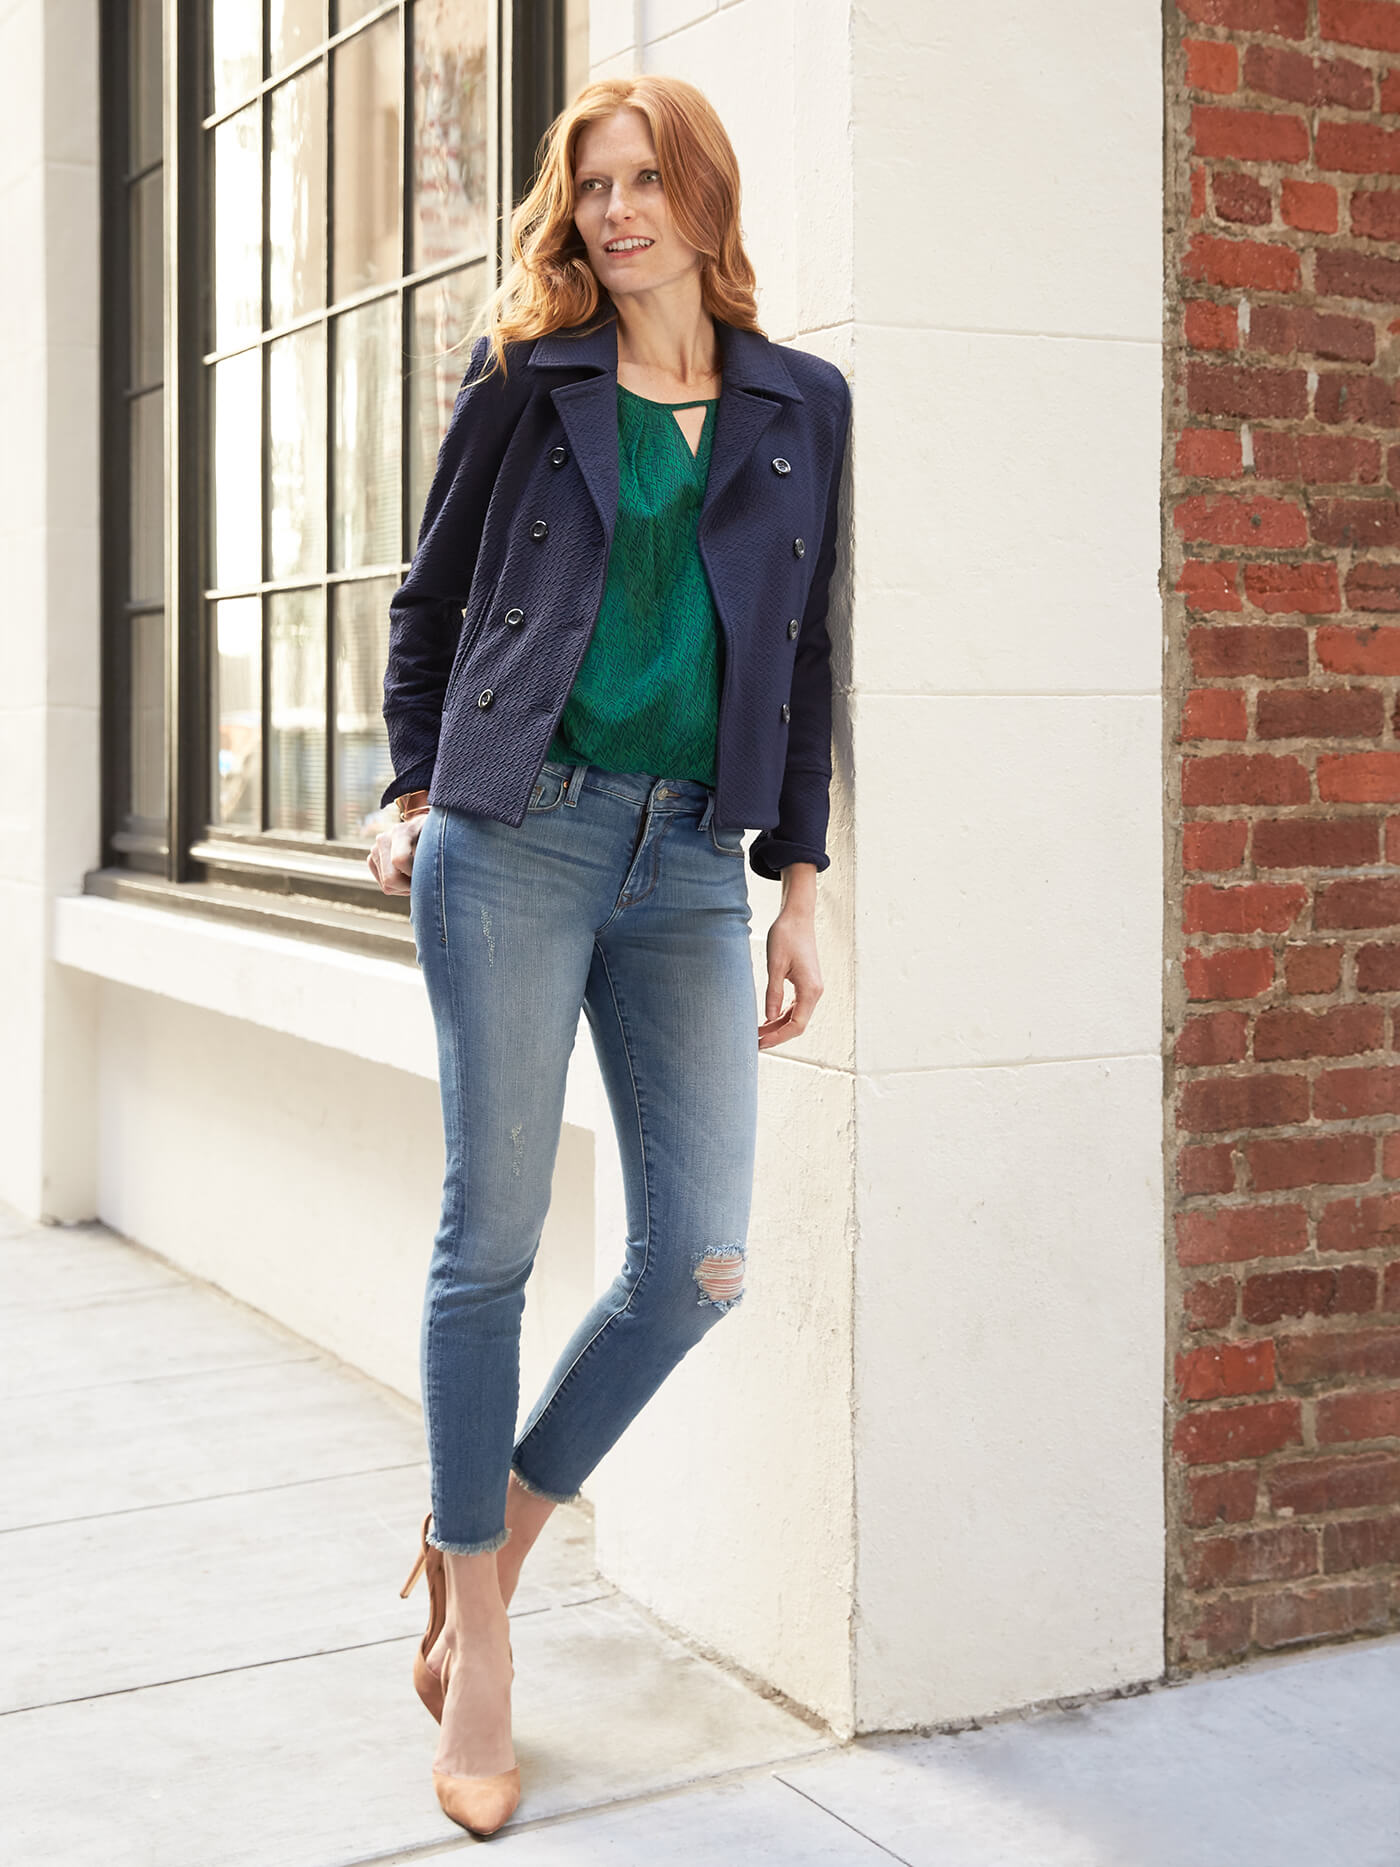 When Should I Tuck In My Shirt Stitch Fix Style Shoes 12 Jeans Girl To A